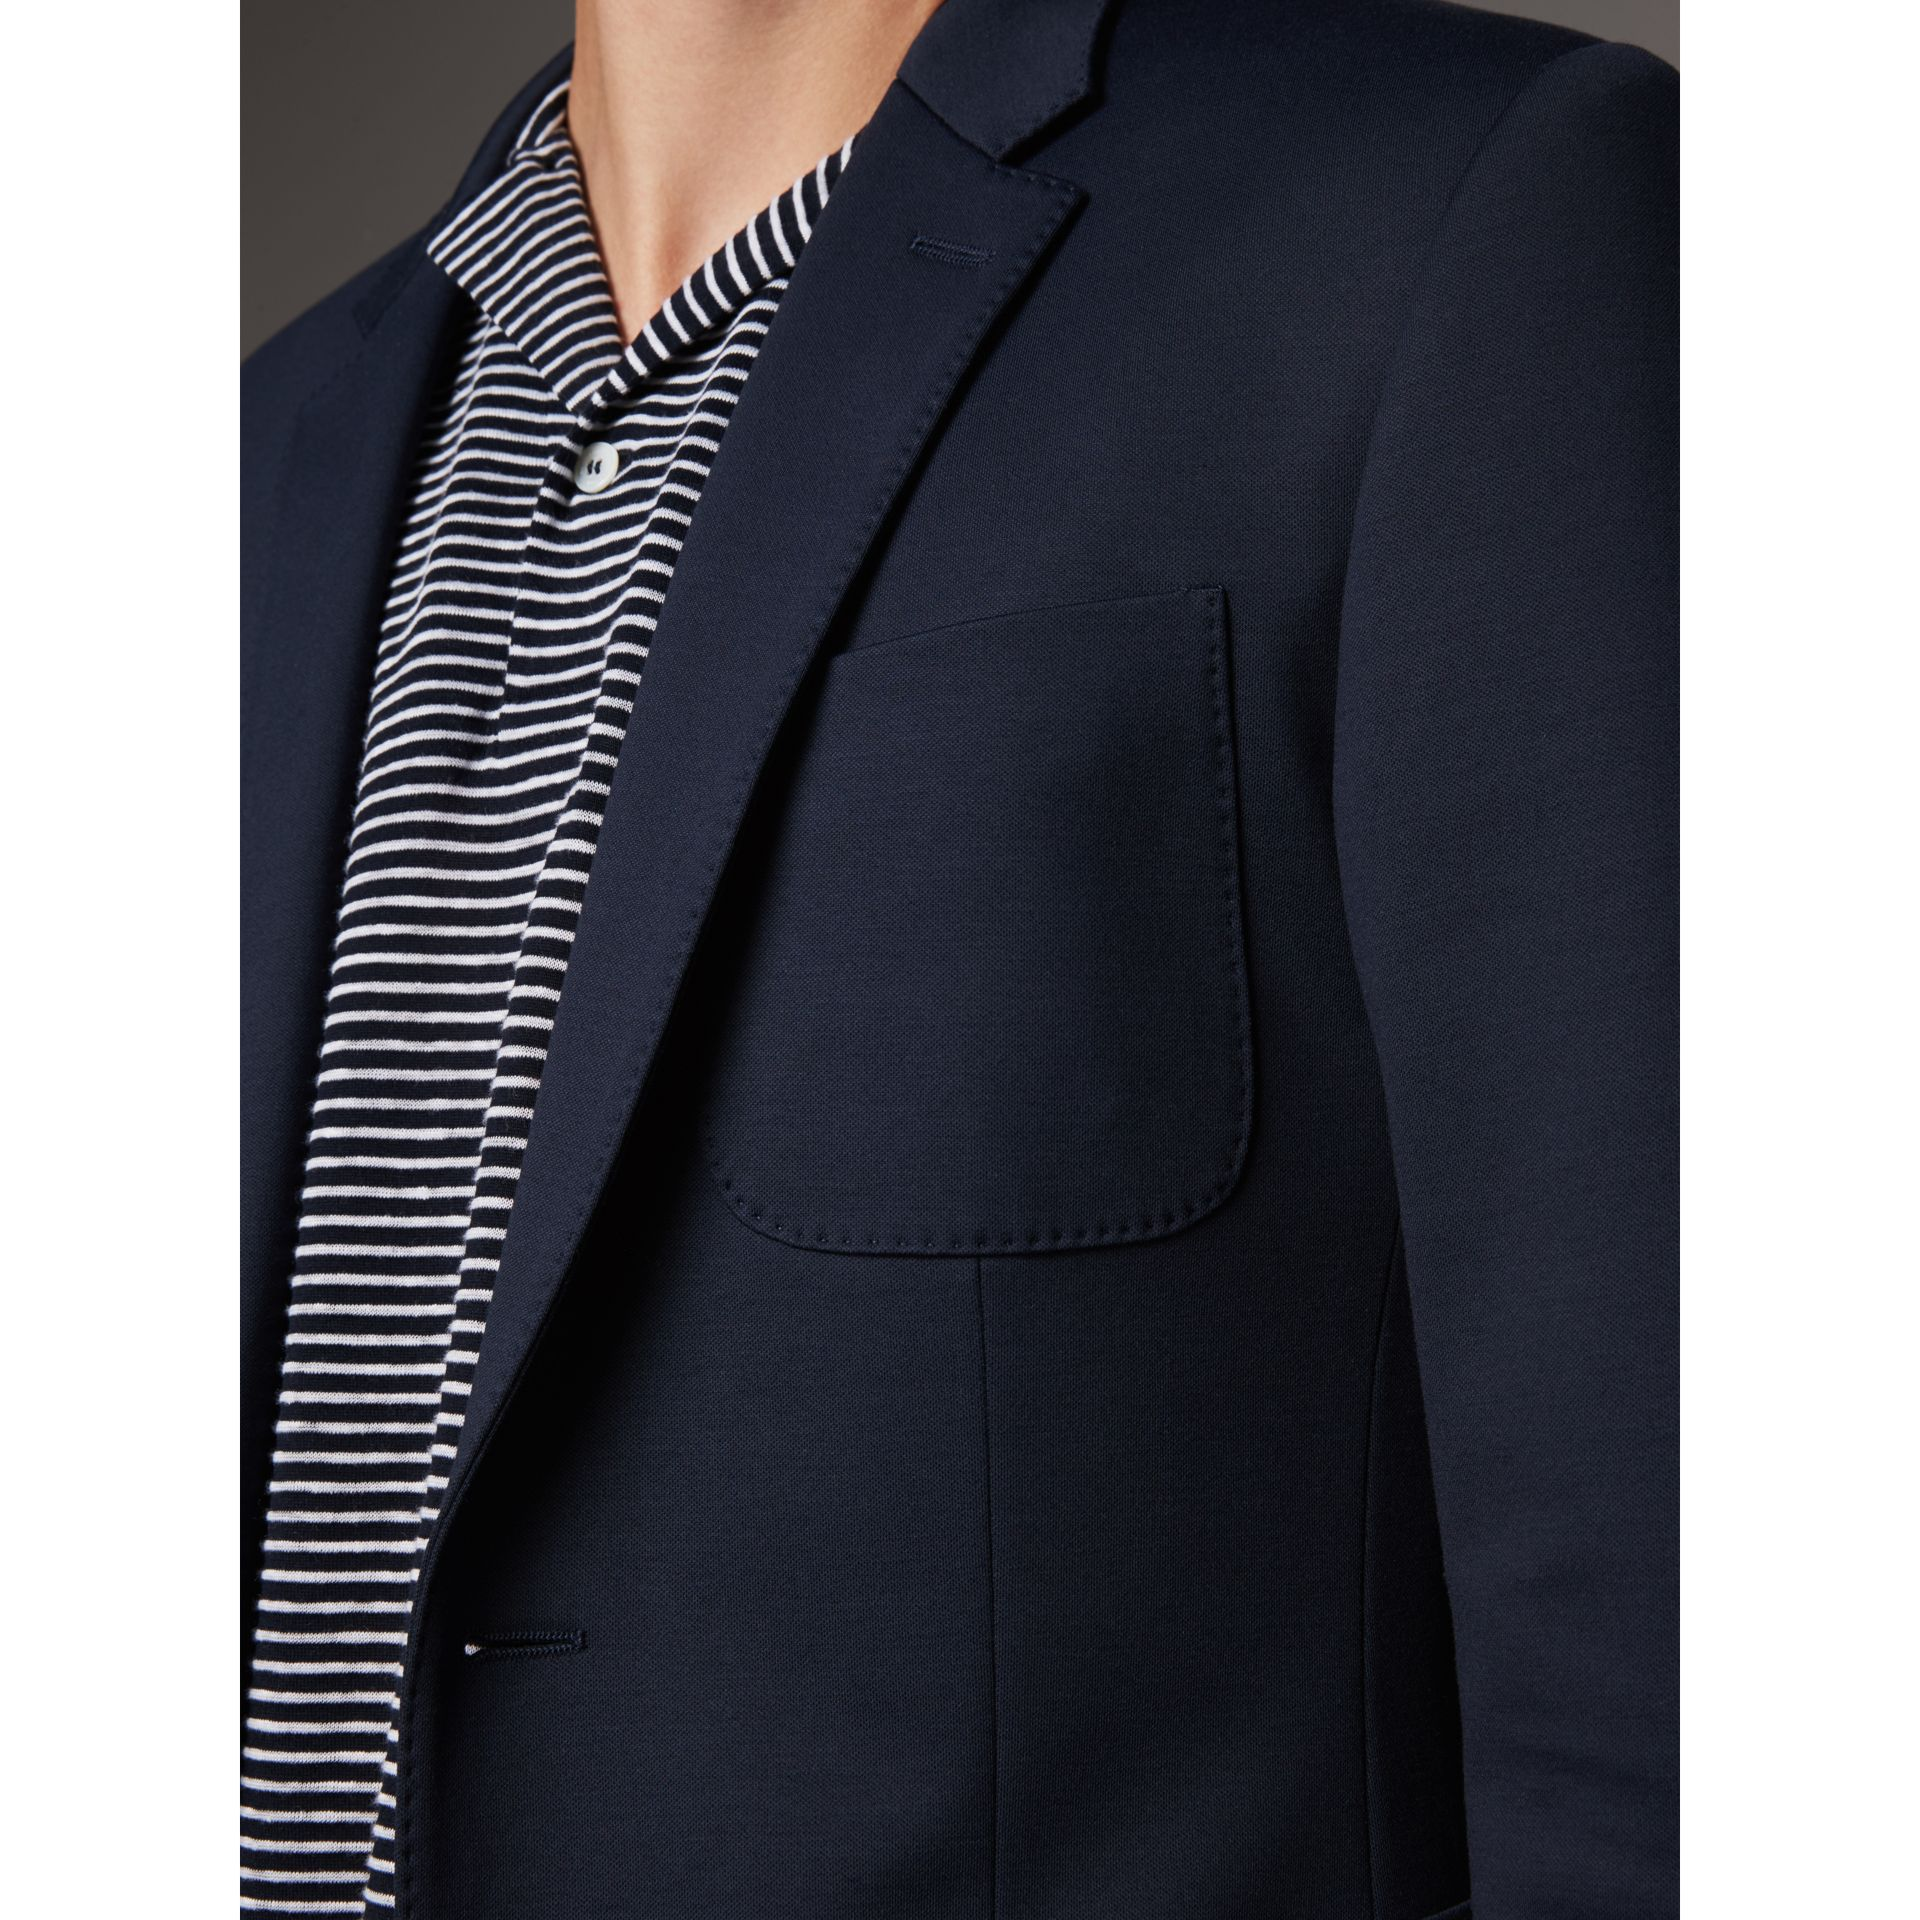 Slim Fit Cotton Blend Travel Tailoring Suit in Navy - Men | Burberry - gallery image 5